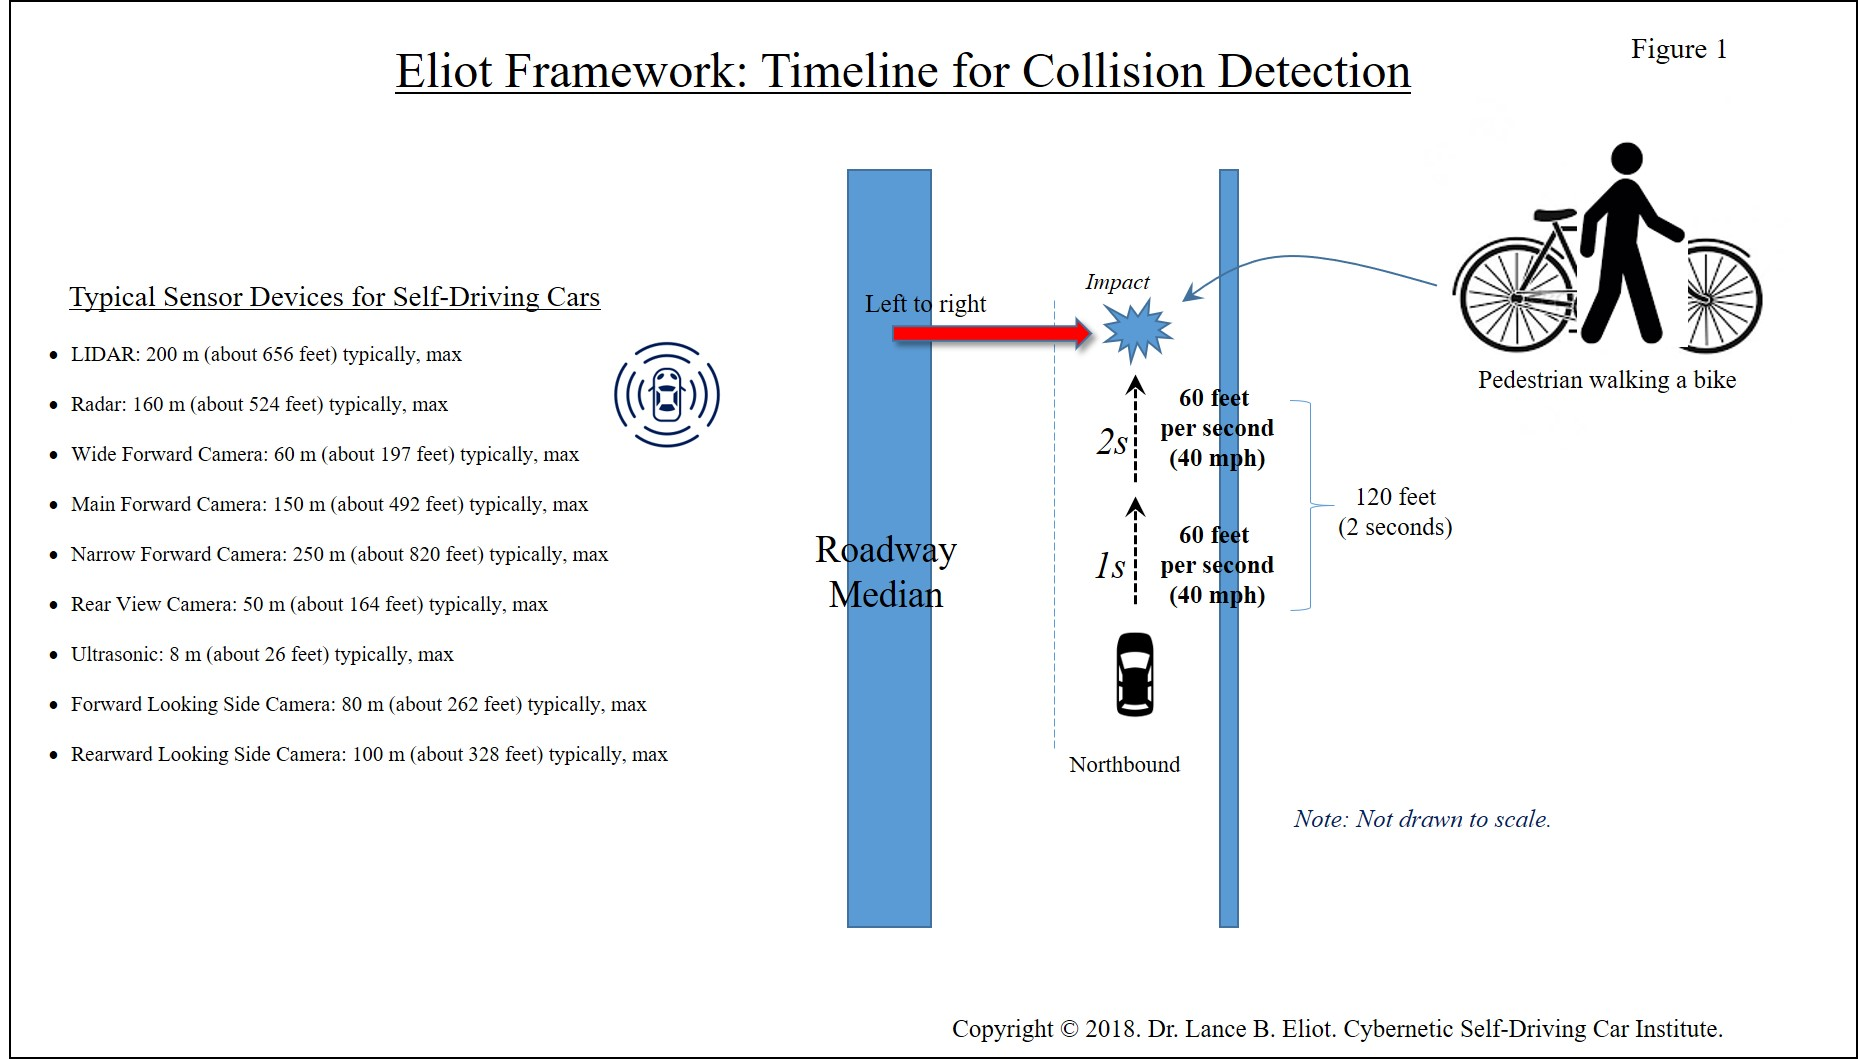 - Lance Eliot Uber Incident Figure 1 300 DPI - Initial Forensic Analysis of the Uber Self-Driving Car Incident in Arizona